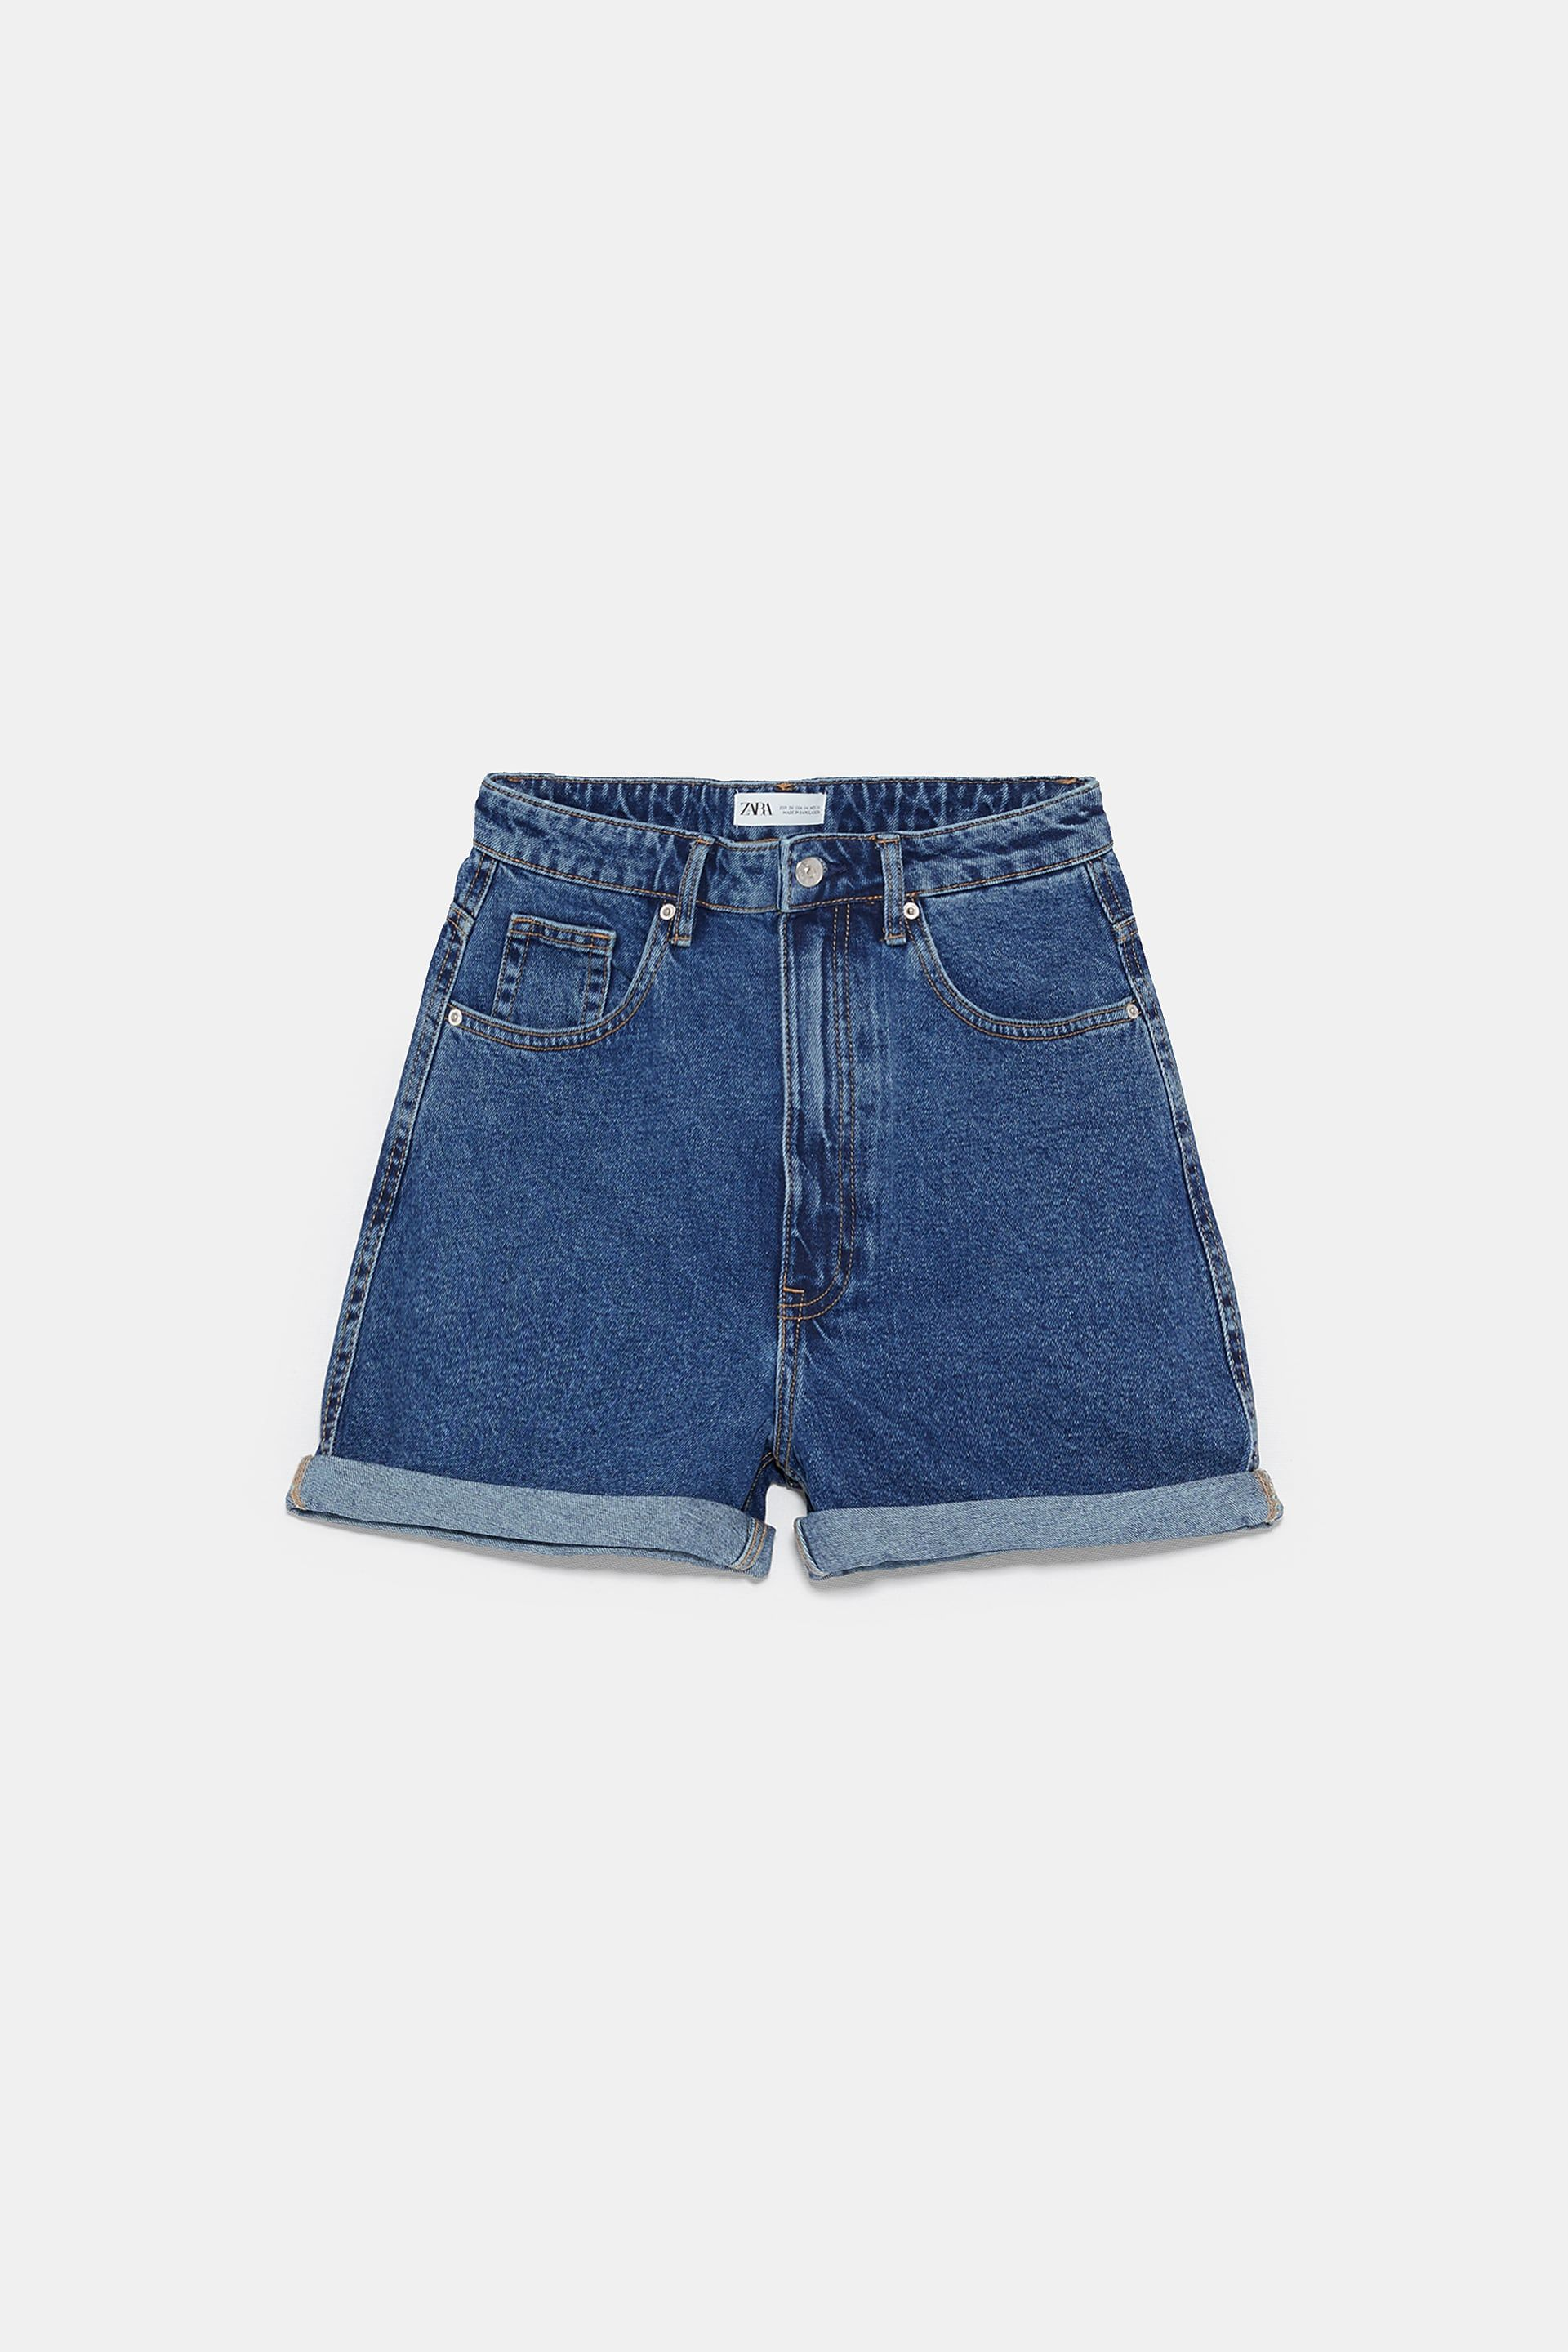 6e511466 AUTHENTIC DENIM MOM FIT SHORTS - BEST SELLERS-TRF | ZARA United States